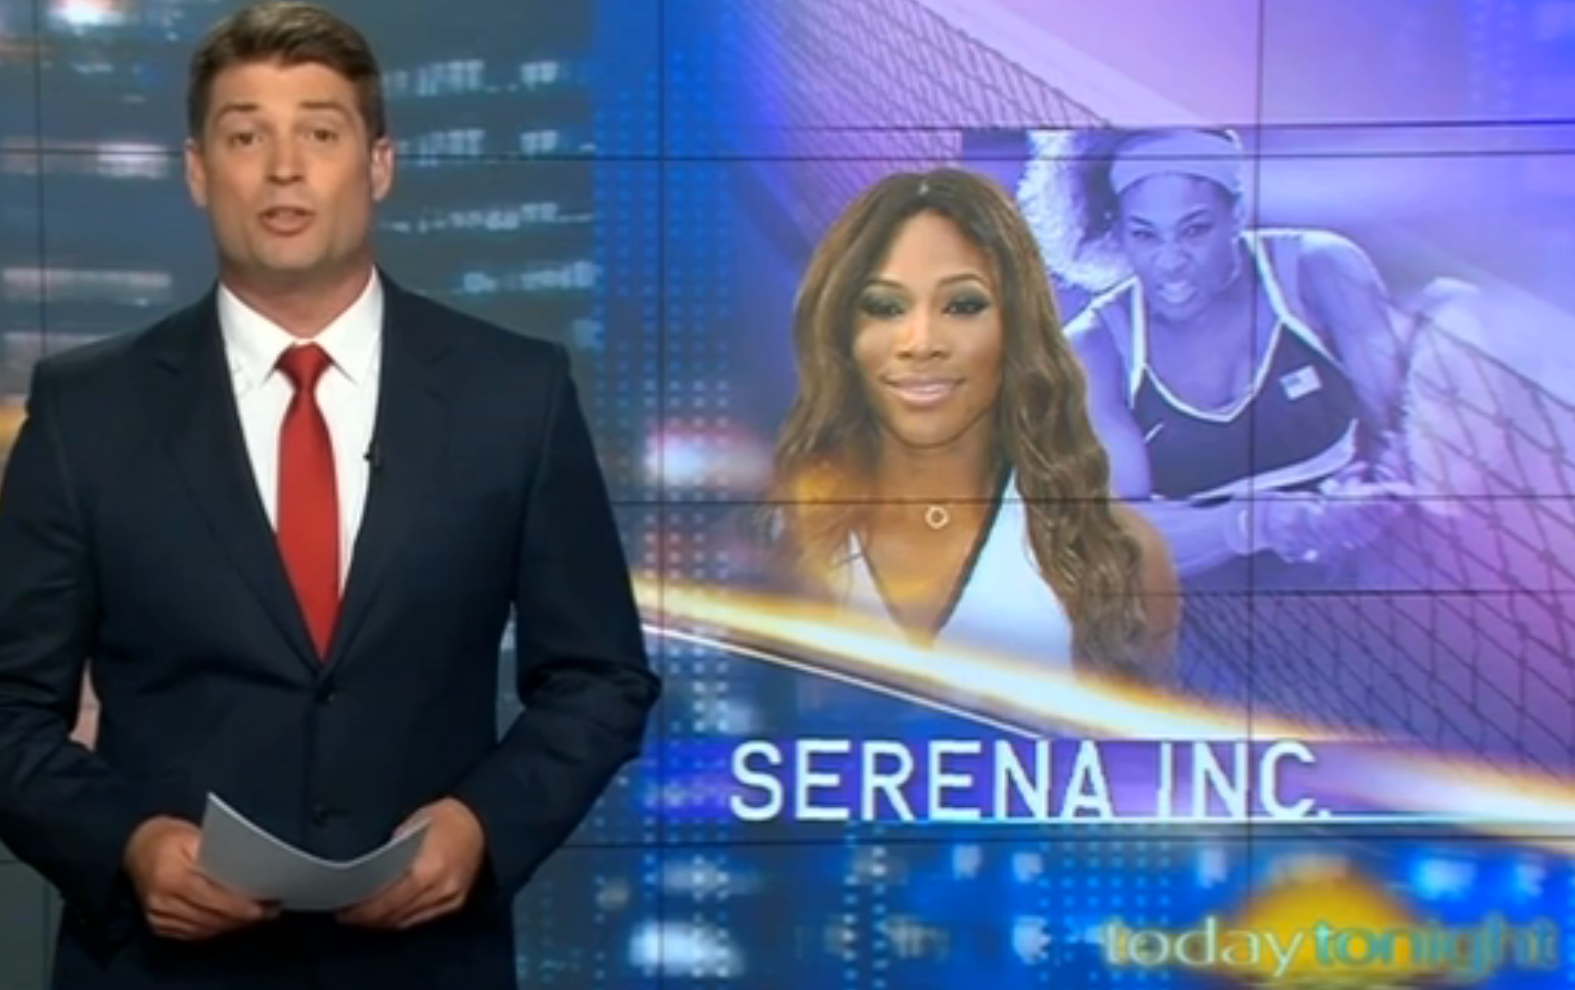 Serena Williams Styled by Kiss Me Stupid on Today Tonight